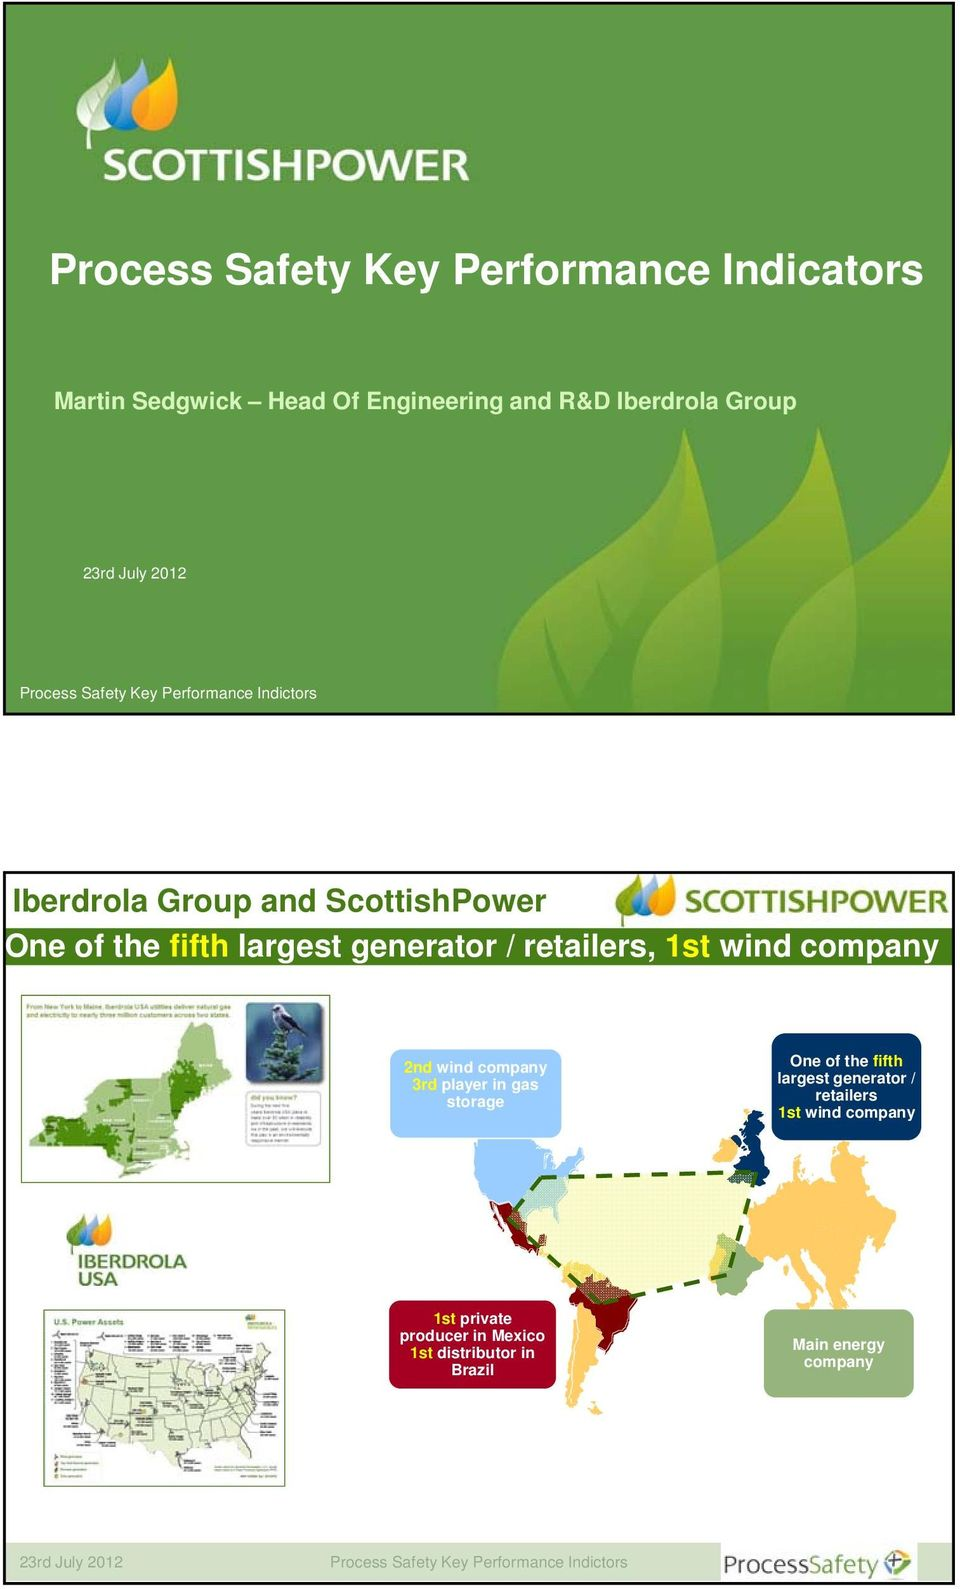 2nd wind company 3rd player in gas storage One of the fifth largest generator / retailers 1st wind company 1st private